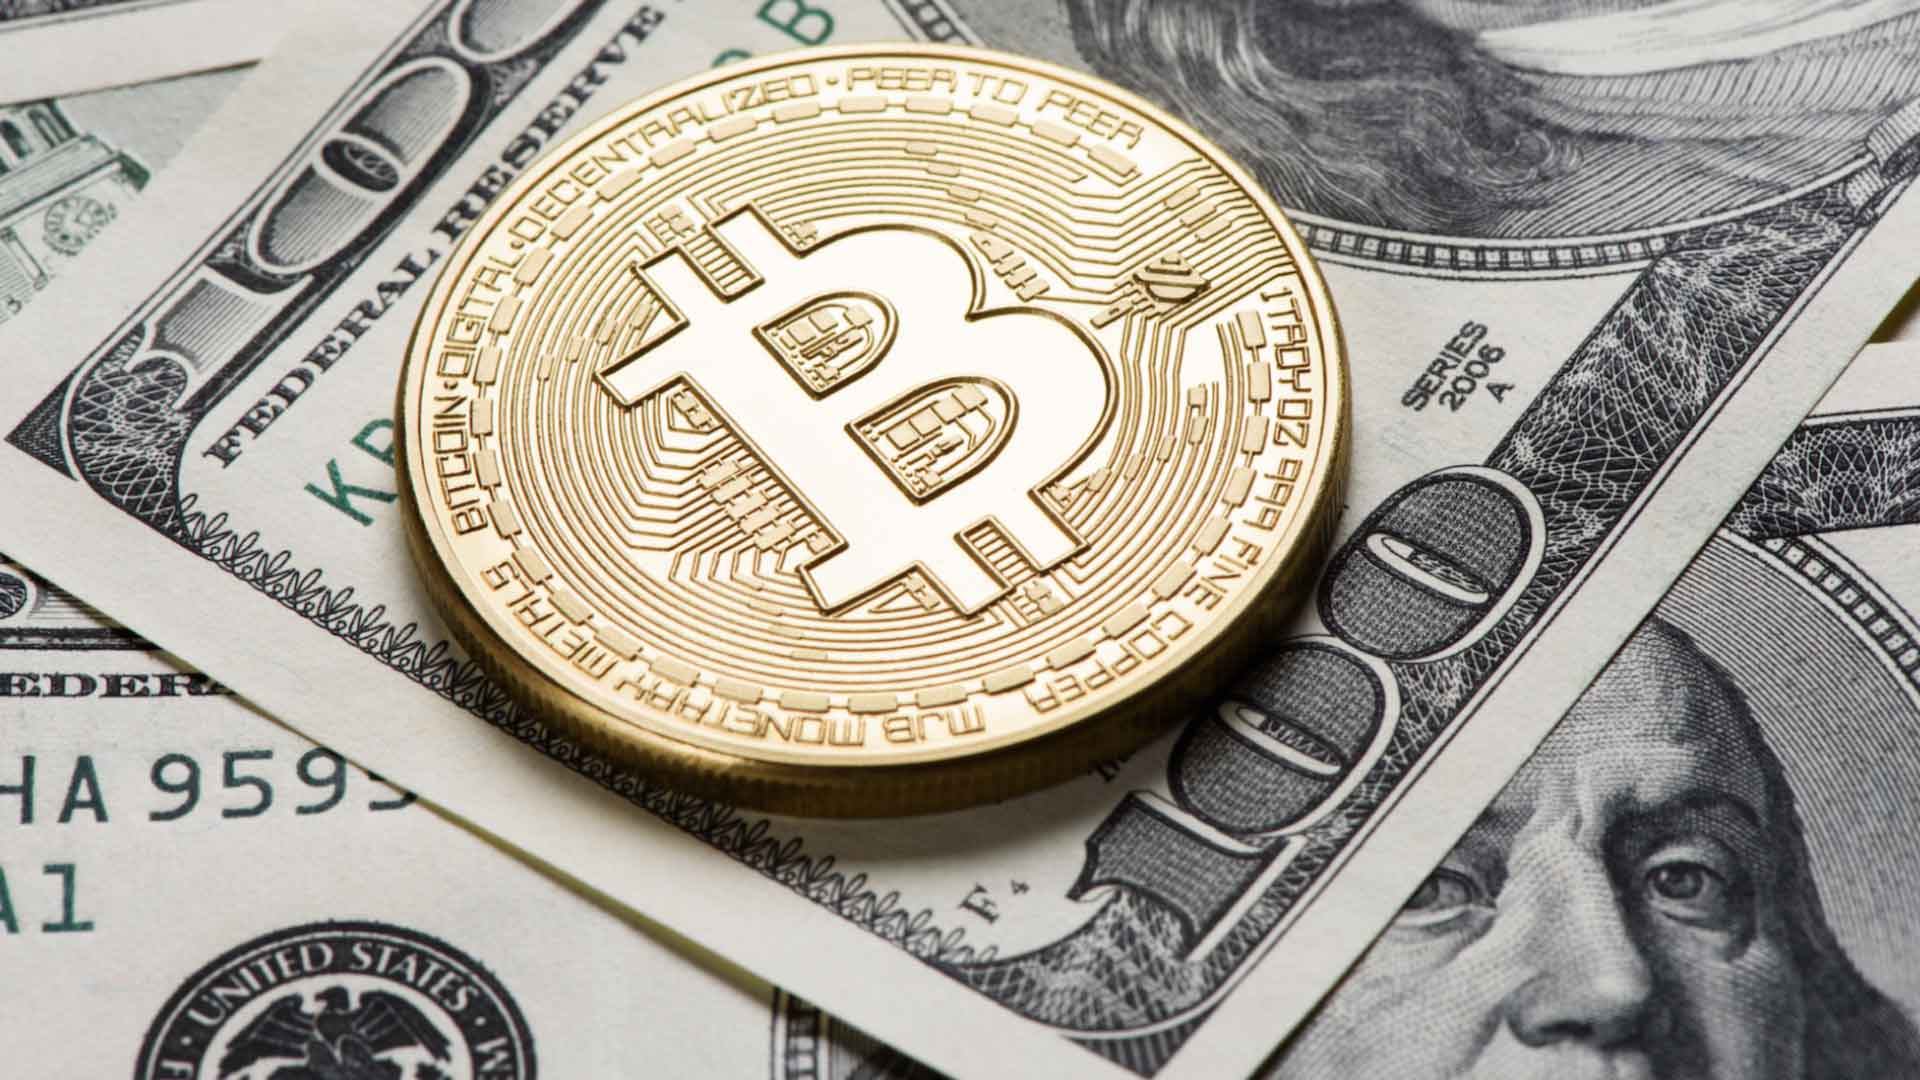 Cannabis and bitcoin go hand in hand